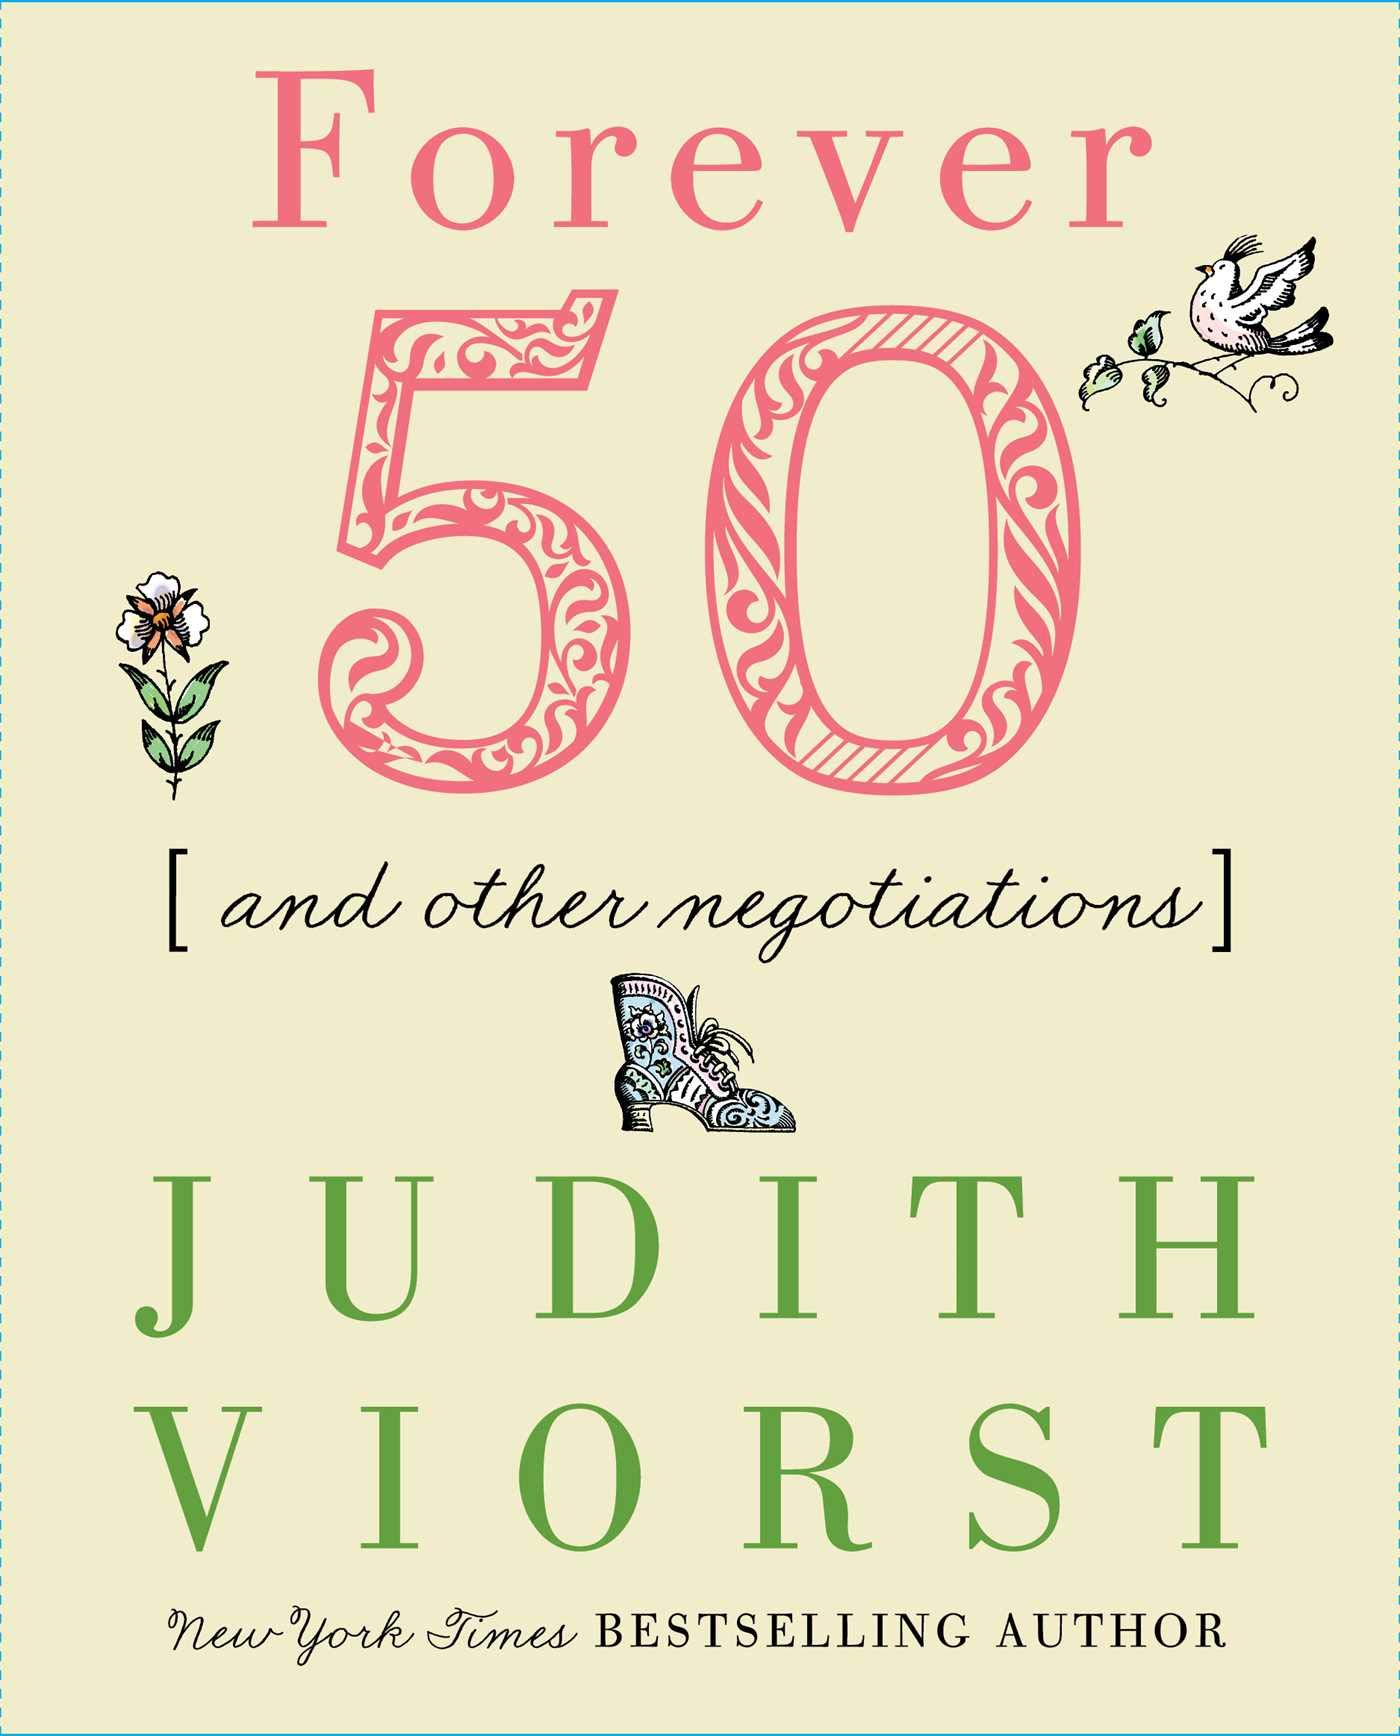 Forever Fifty  And Other Negotiations  Judith Viorst's Decades